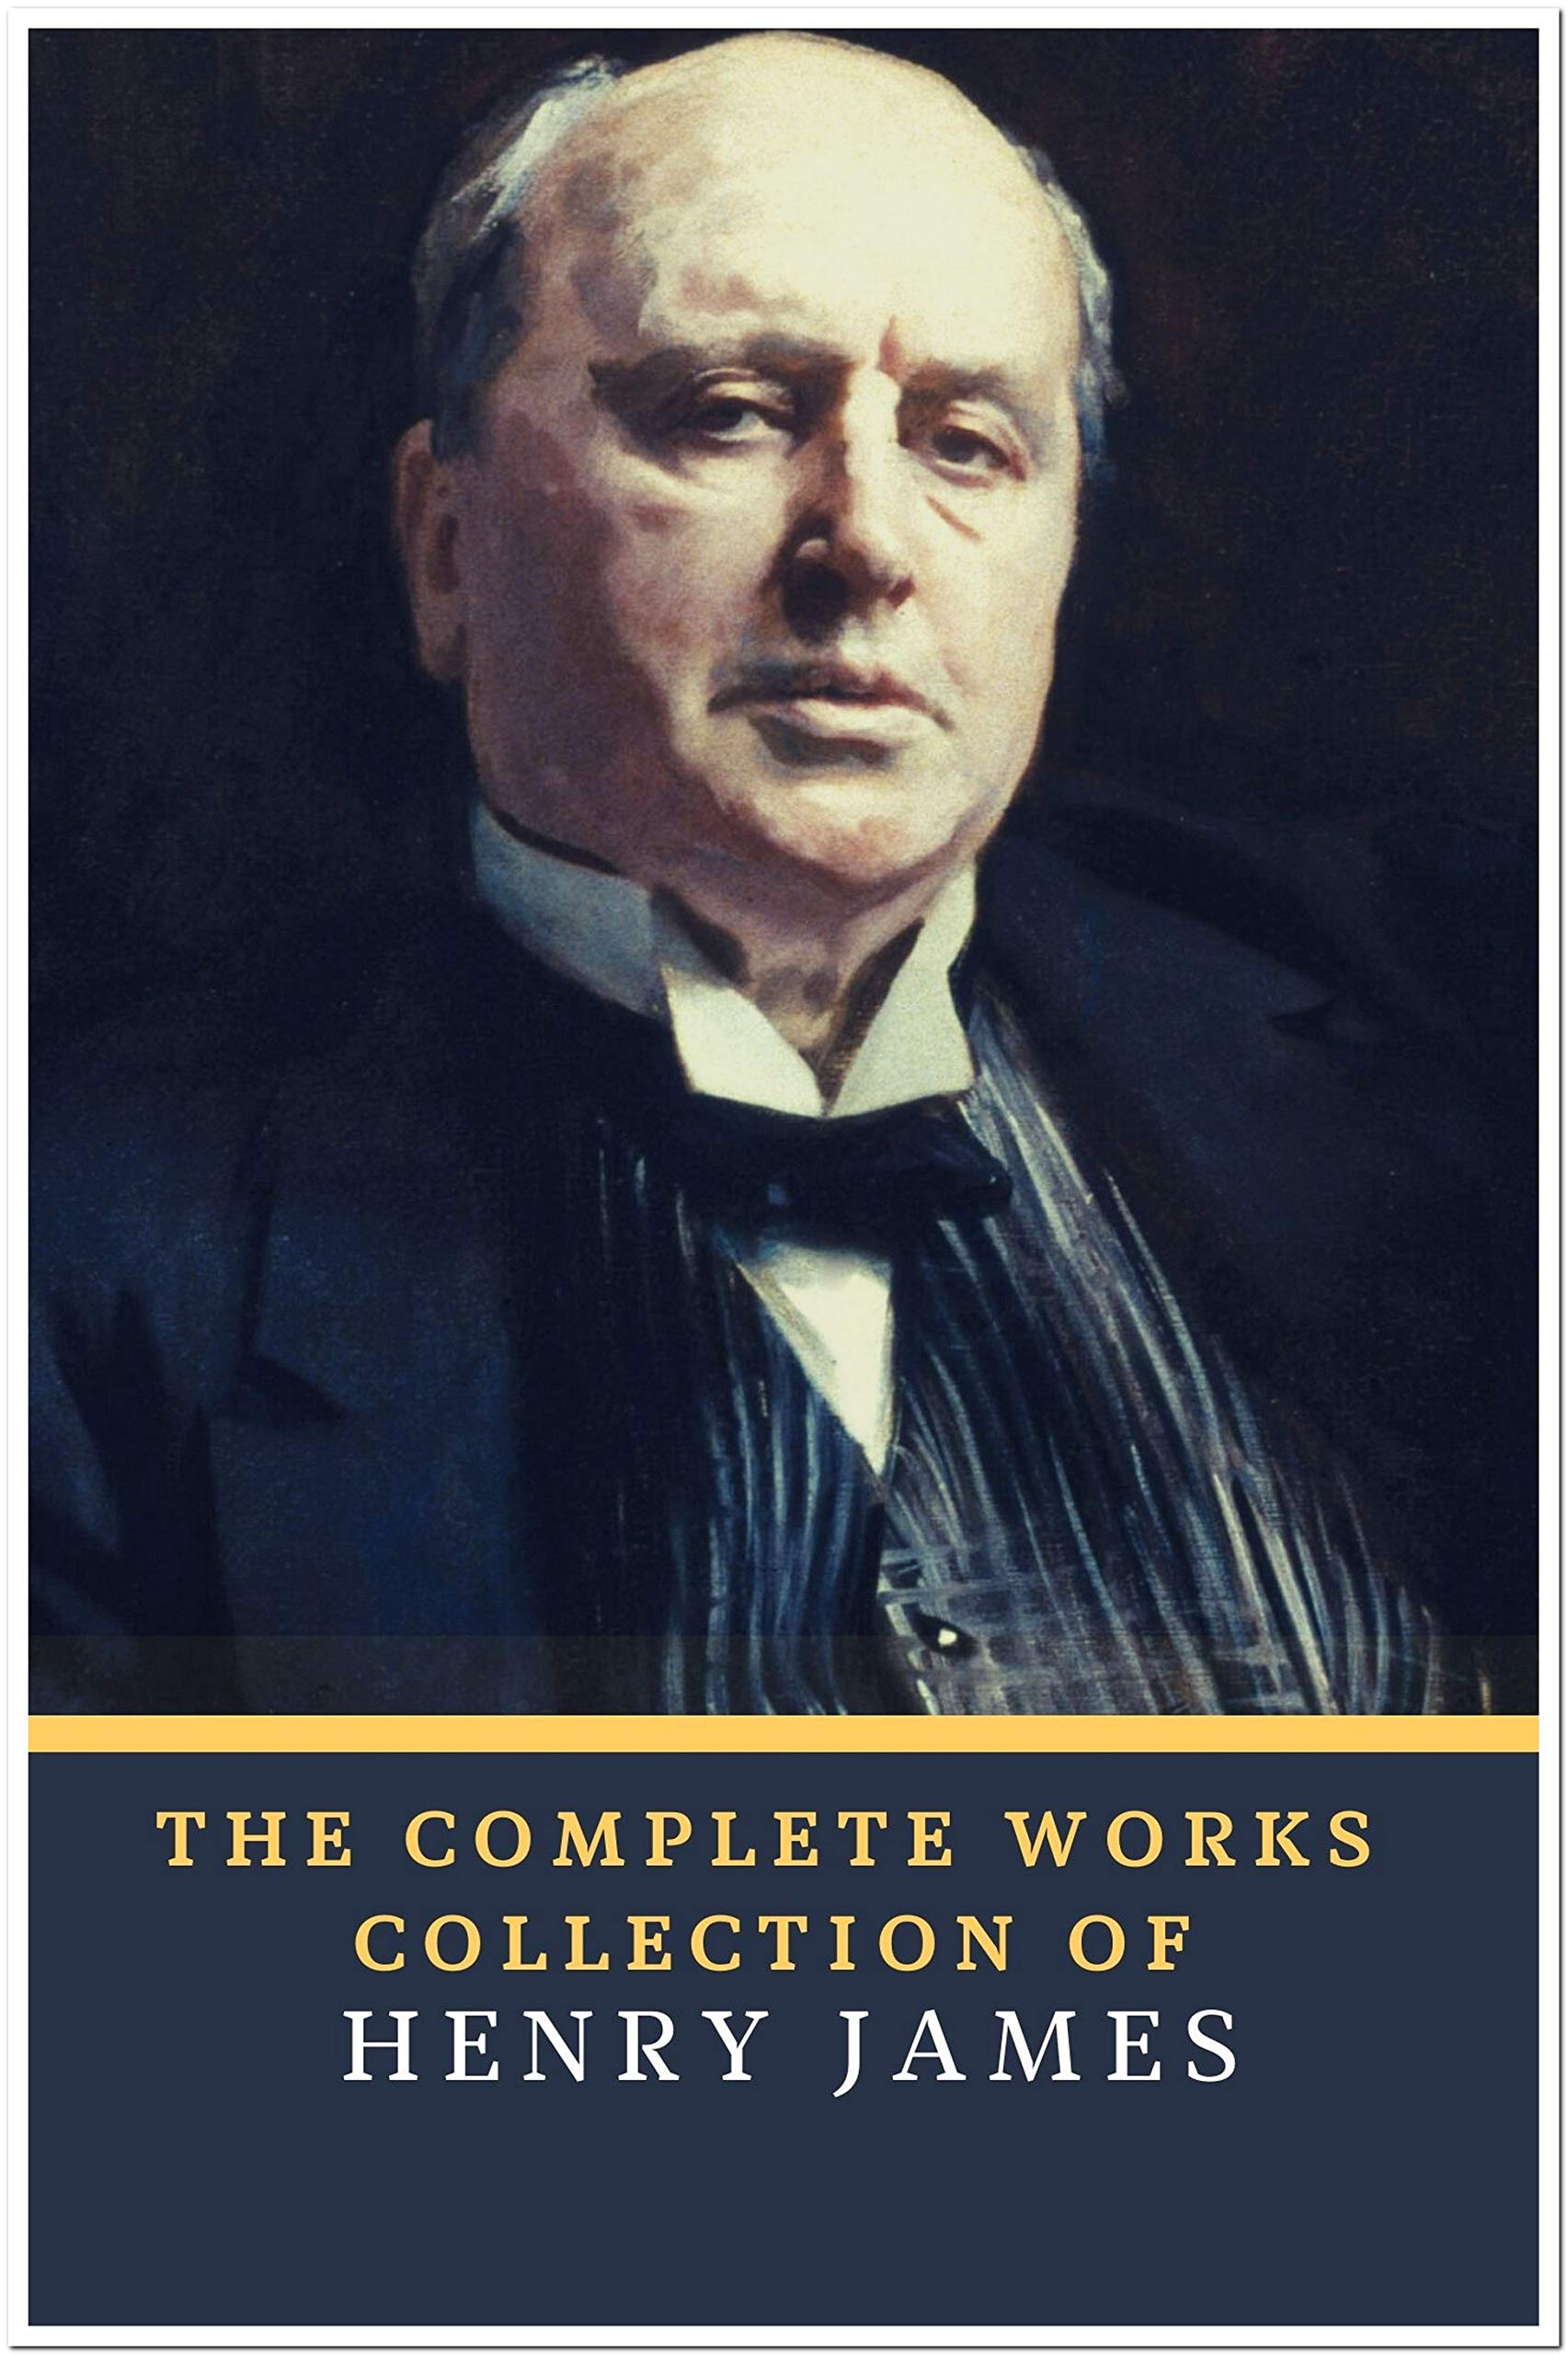 The Complete Works Collection of Henry James (Annotated): Collection Includes The Turn of the Screw, Daisy Miller, The Beast in the Jungle, The Portrait of a Lady, The Ambassadors, And More